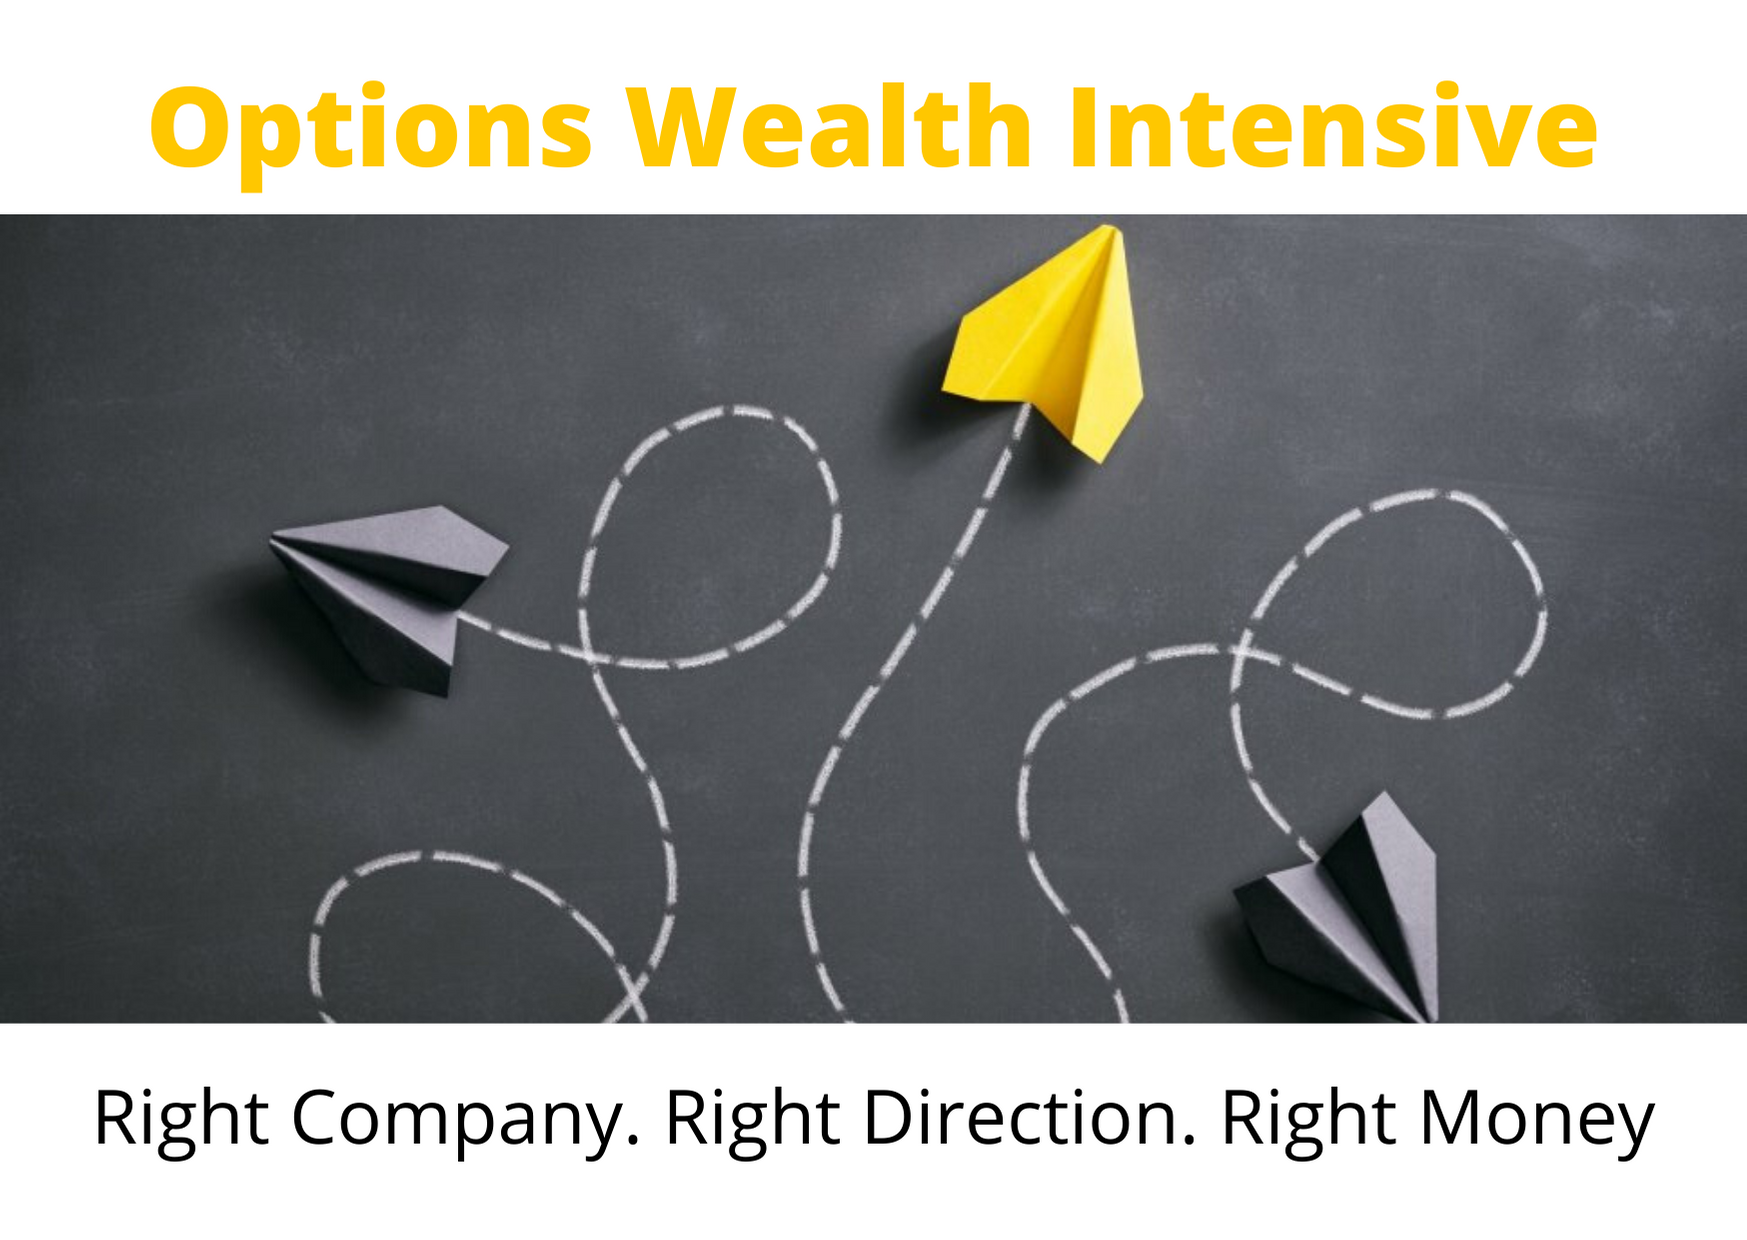 Options Wealth Intensive